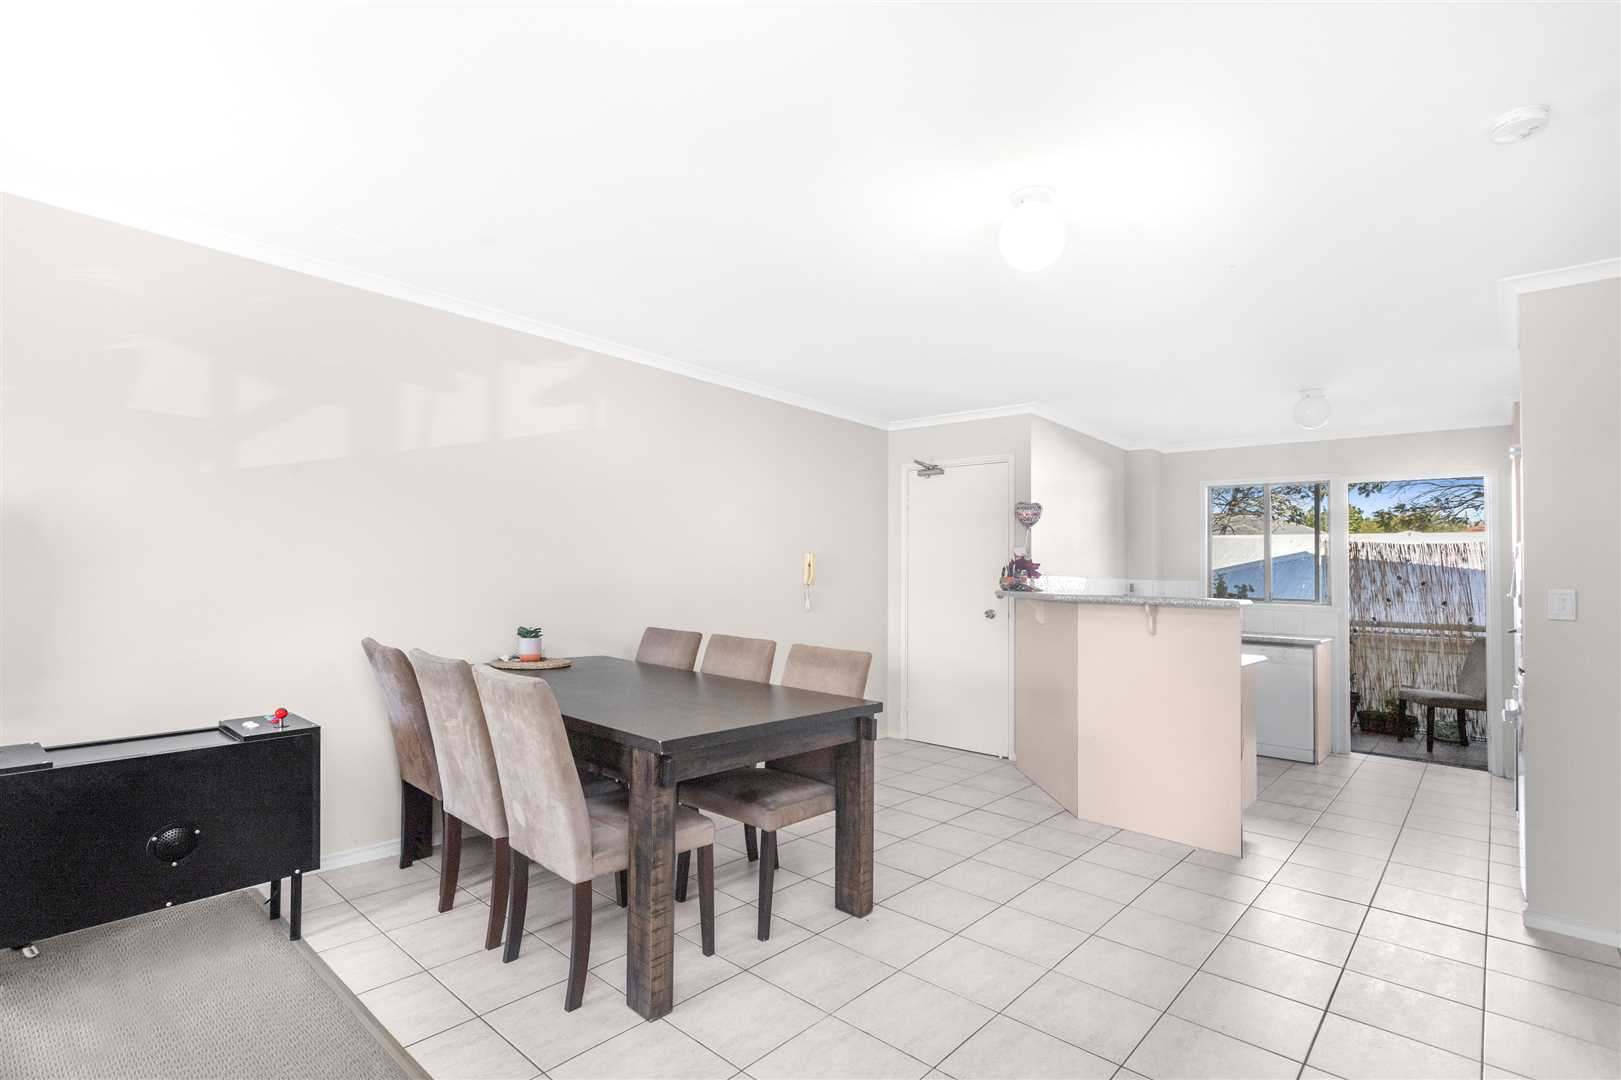 Tiled Dining Area